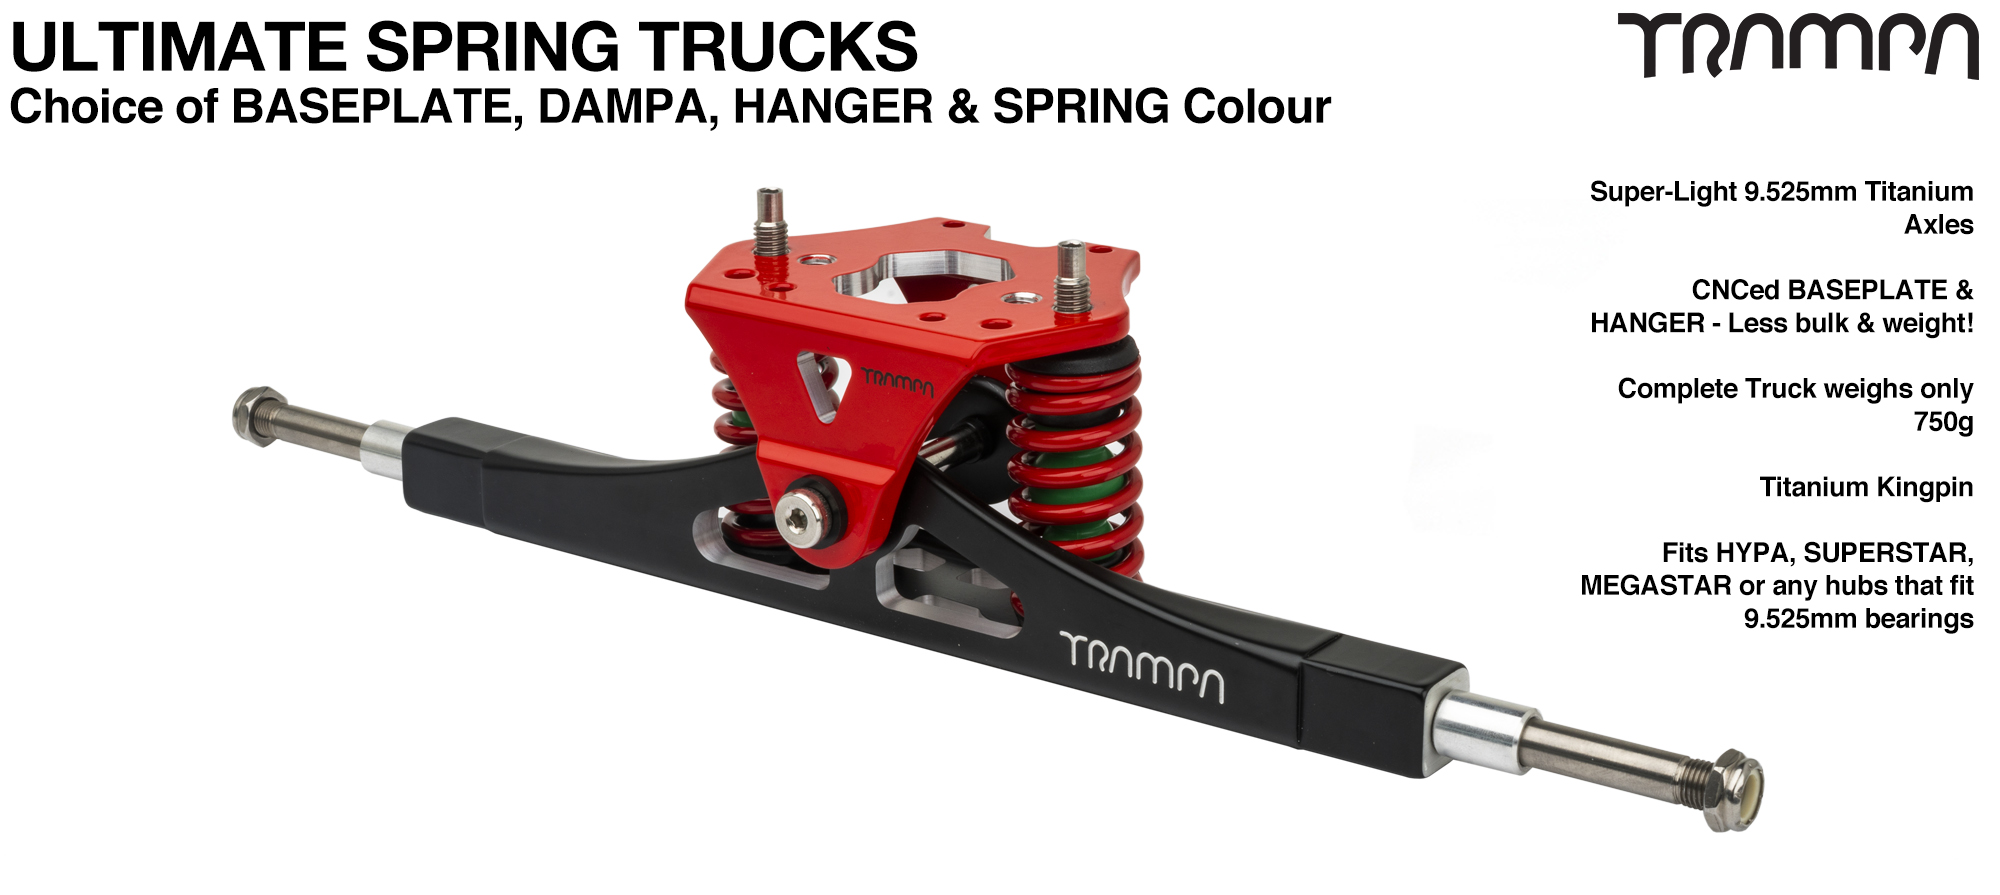 RED Powdercoated ULTIMATE Truck - 48T